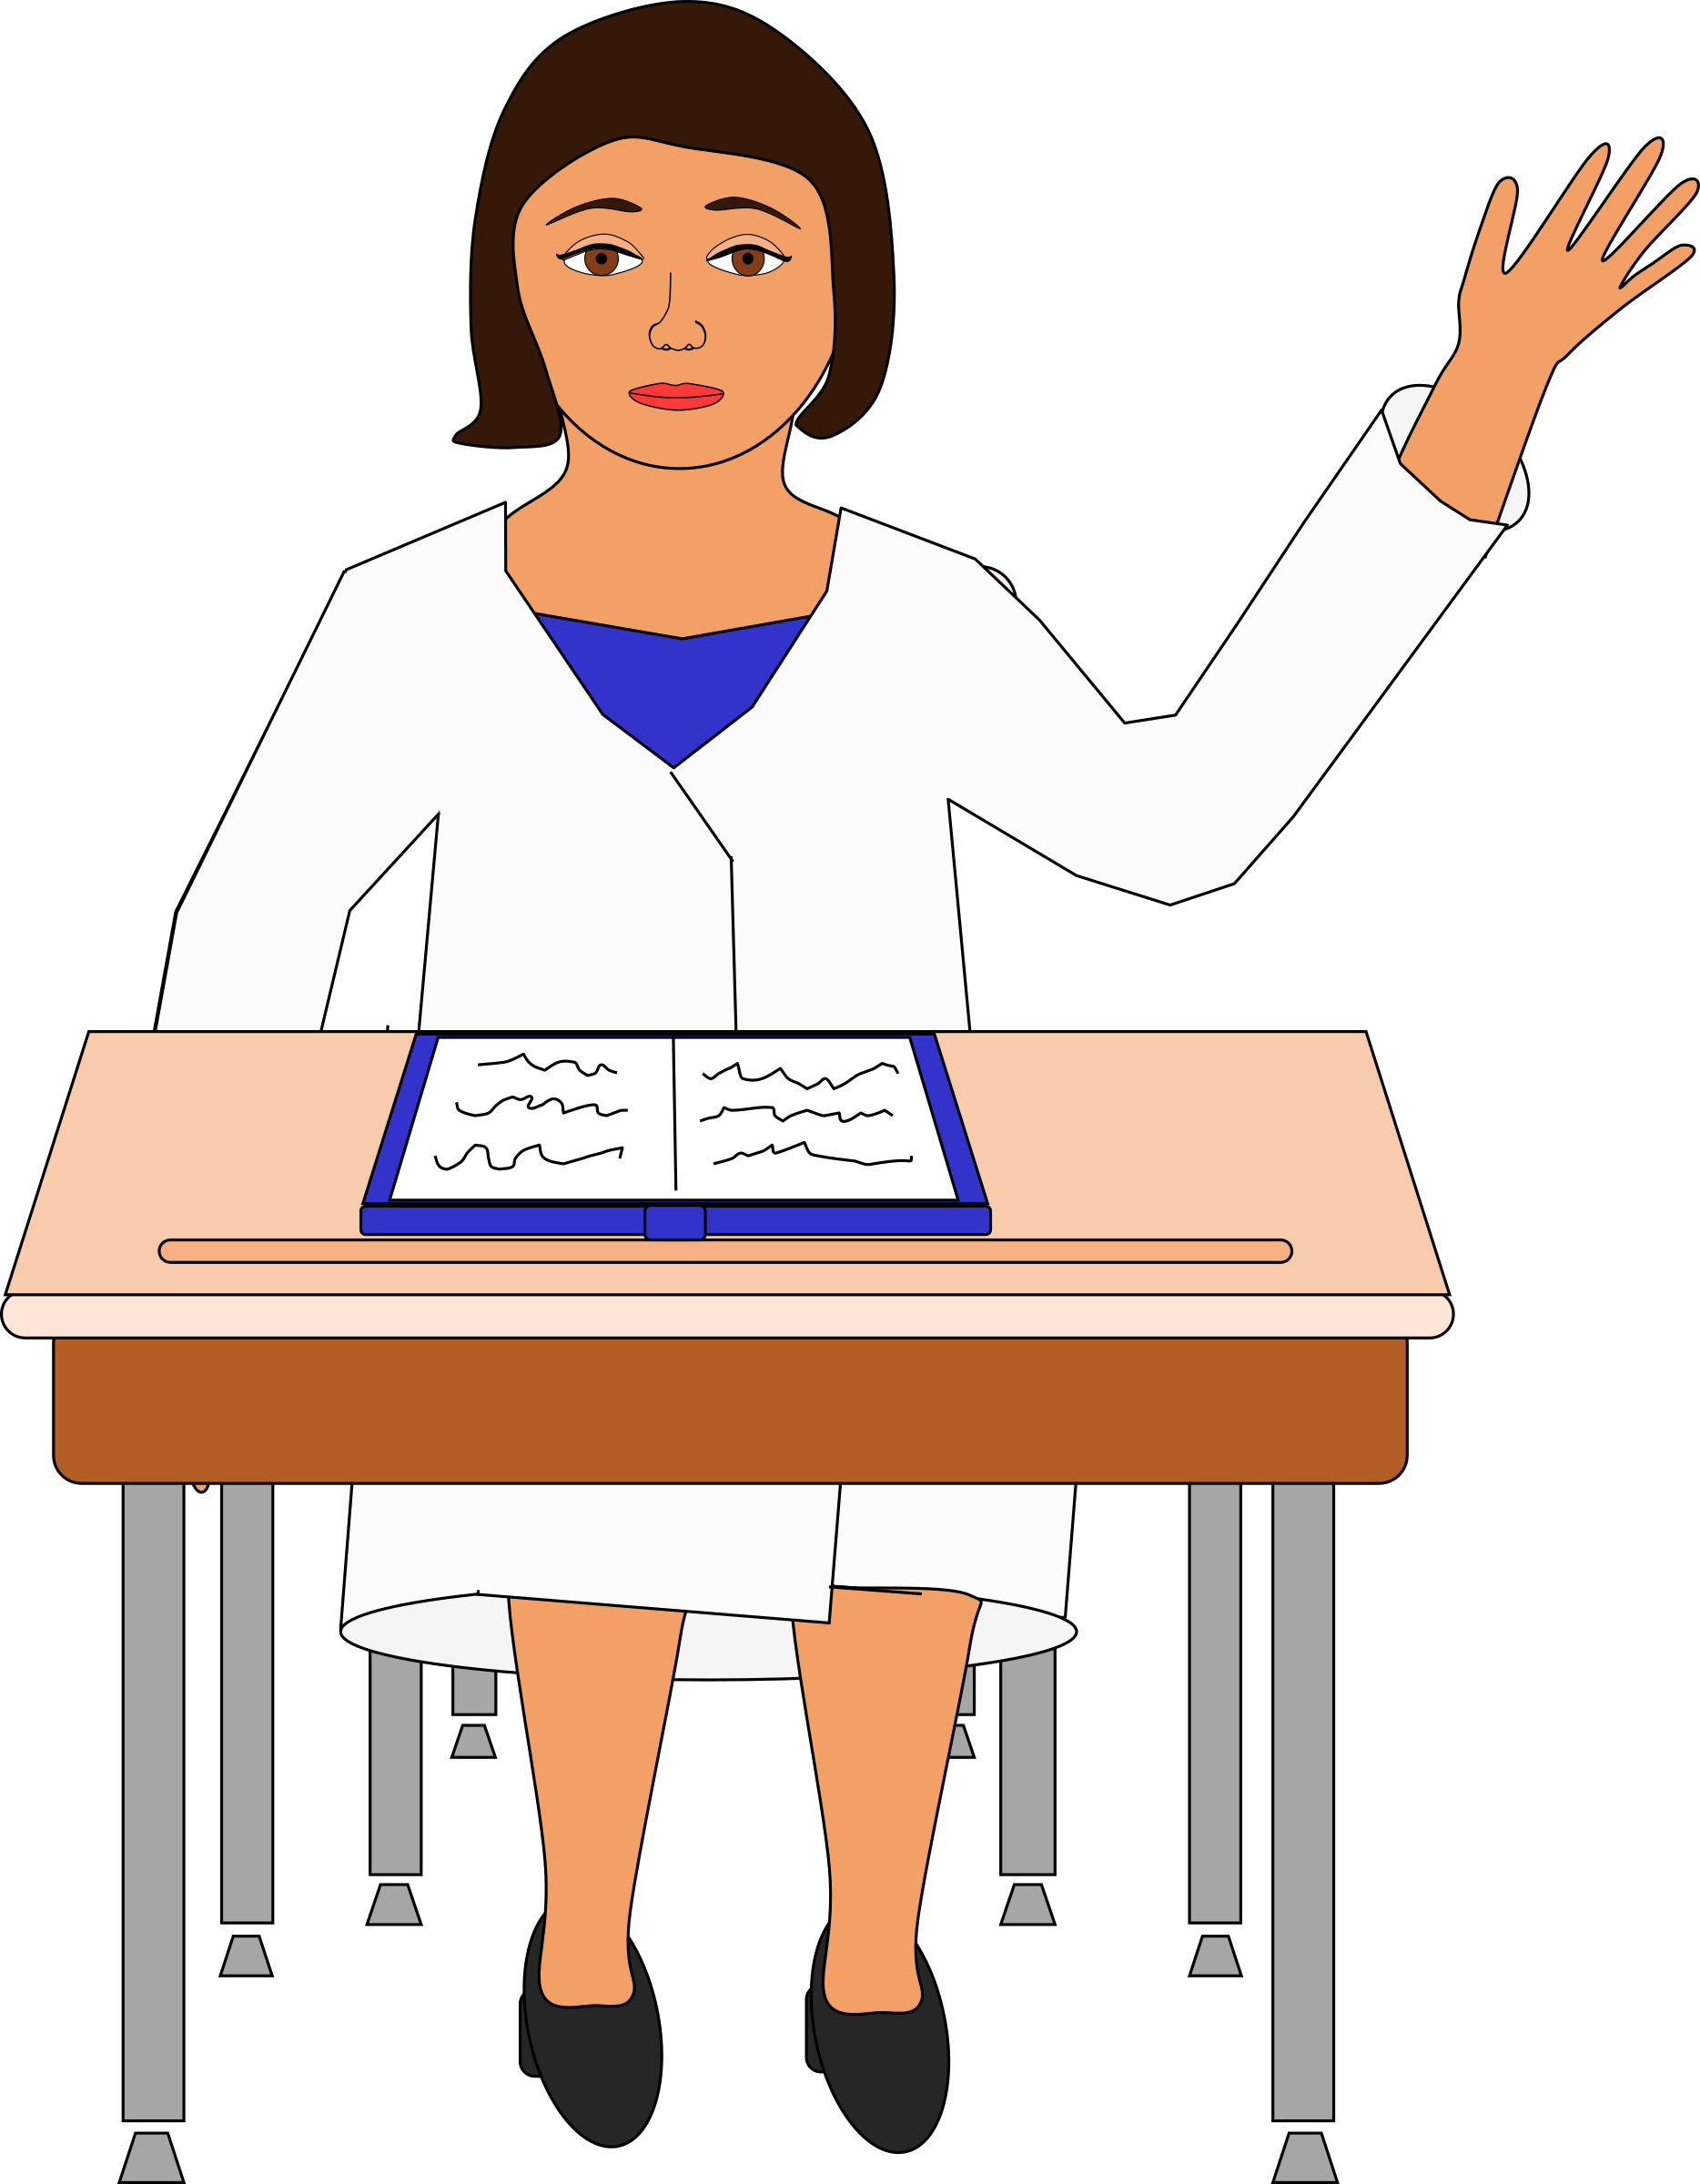 Young girl raising hand in class clipart school.